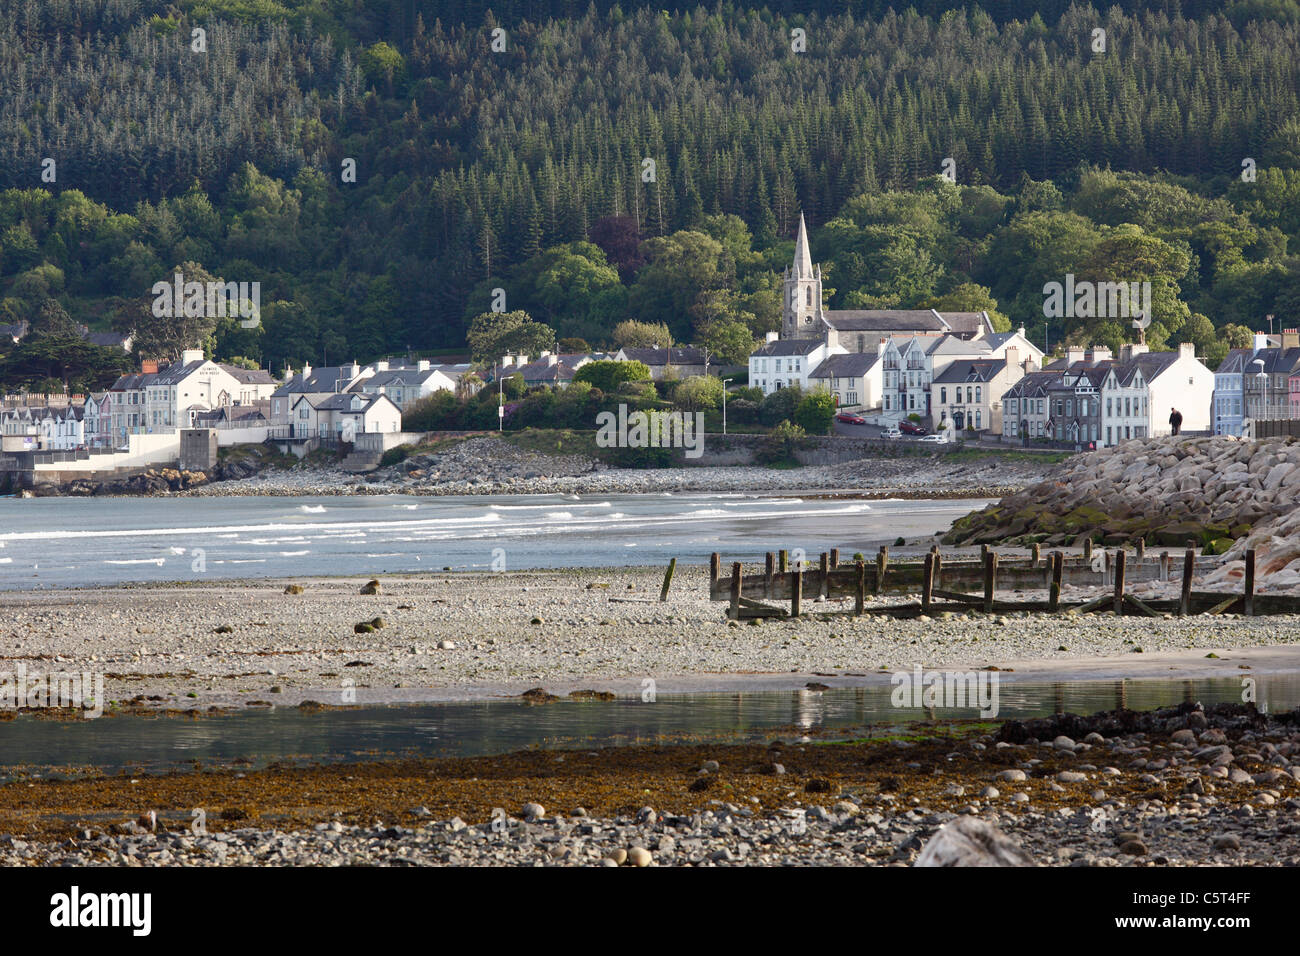 Great Britain, Northern Ireland, County Down, Newcastle - Stock Image